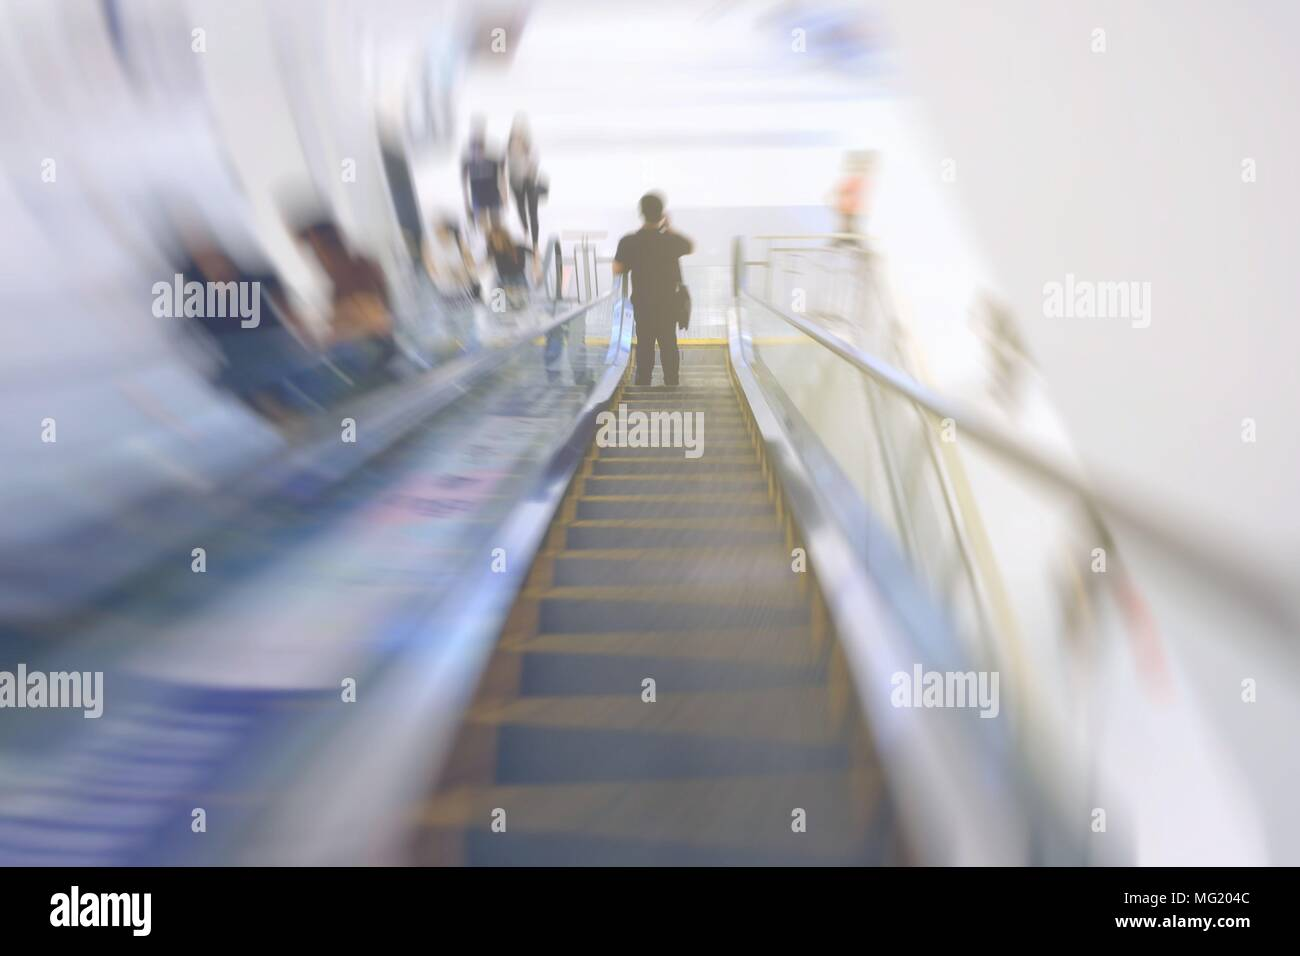 Motion Blurred Image of Man Hoding Moblie Phone and Standing on Escalator. Stock Photo